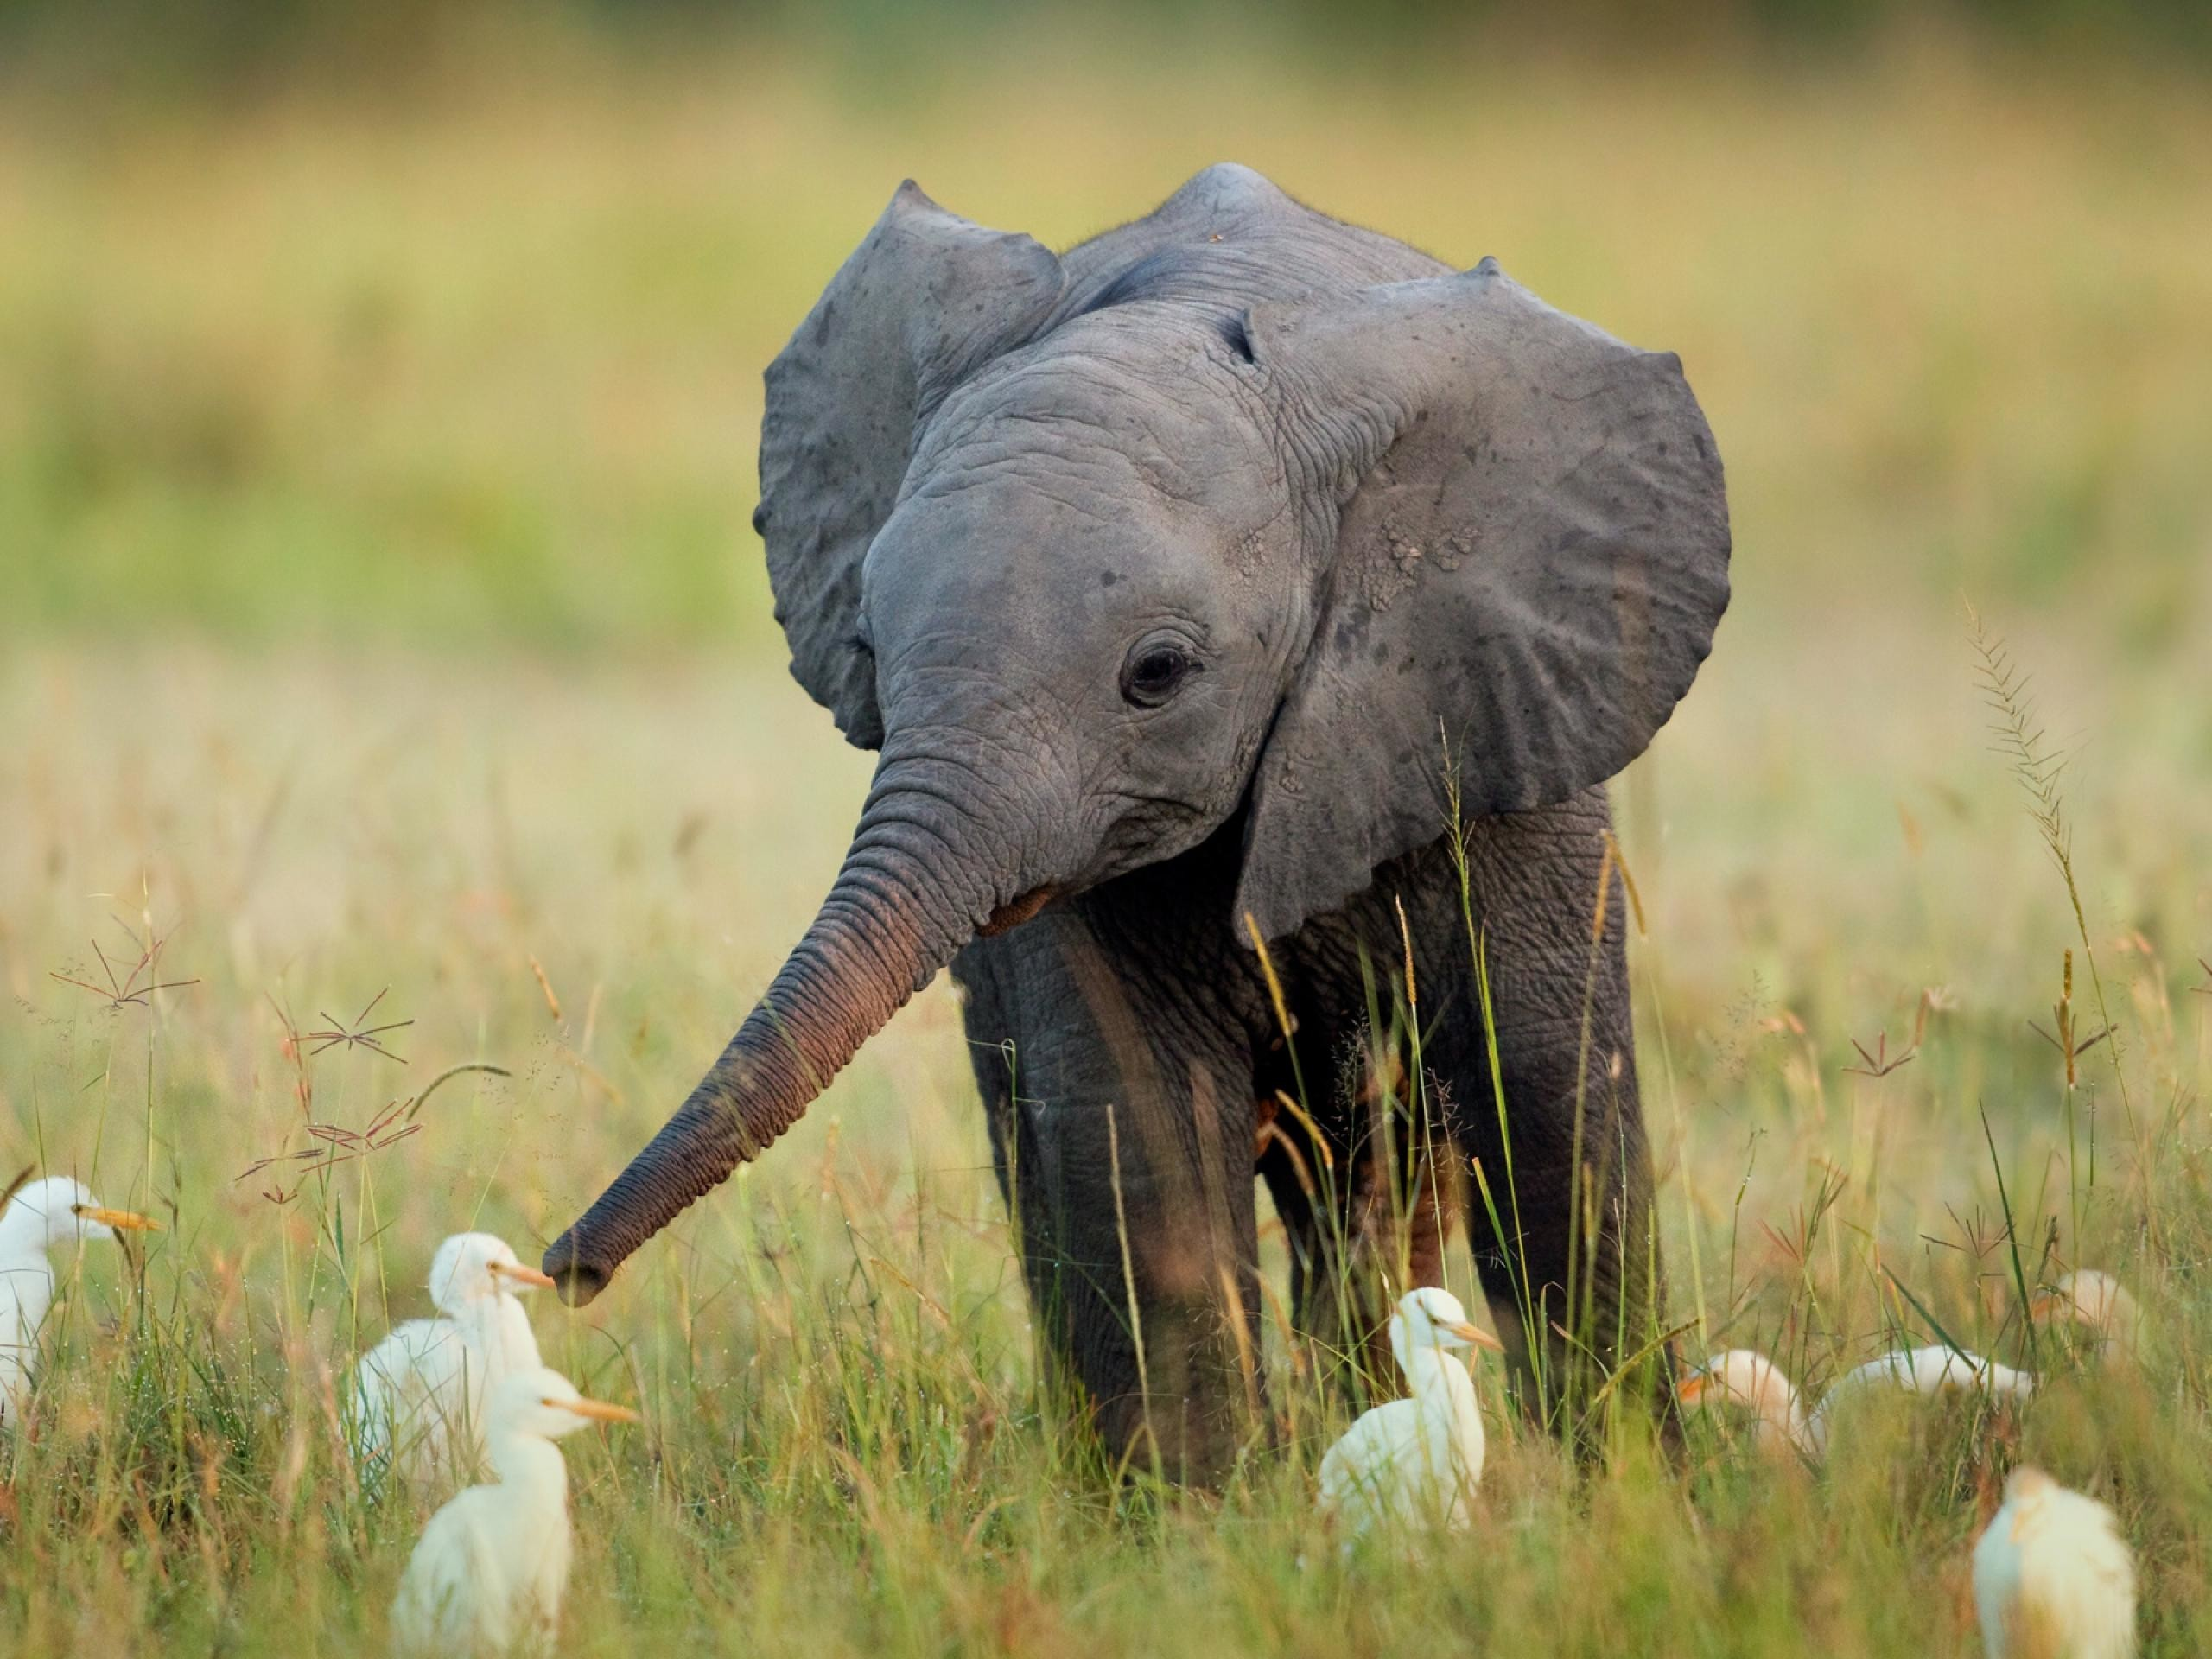 Cute Baby Elephant Baby Elephant And Ducklings 119022